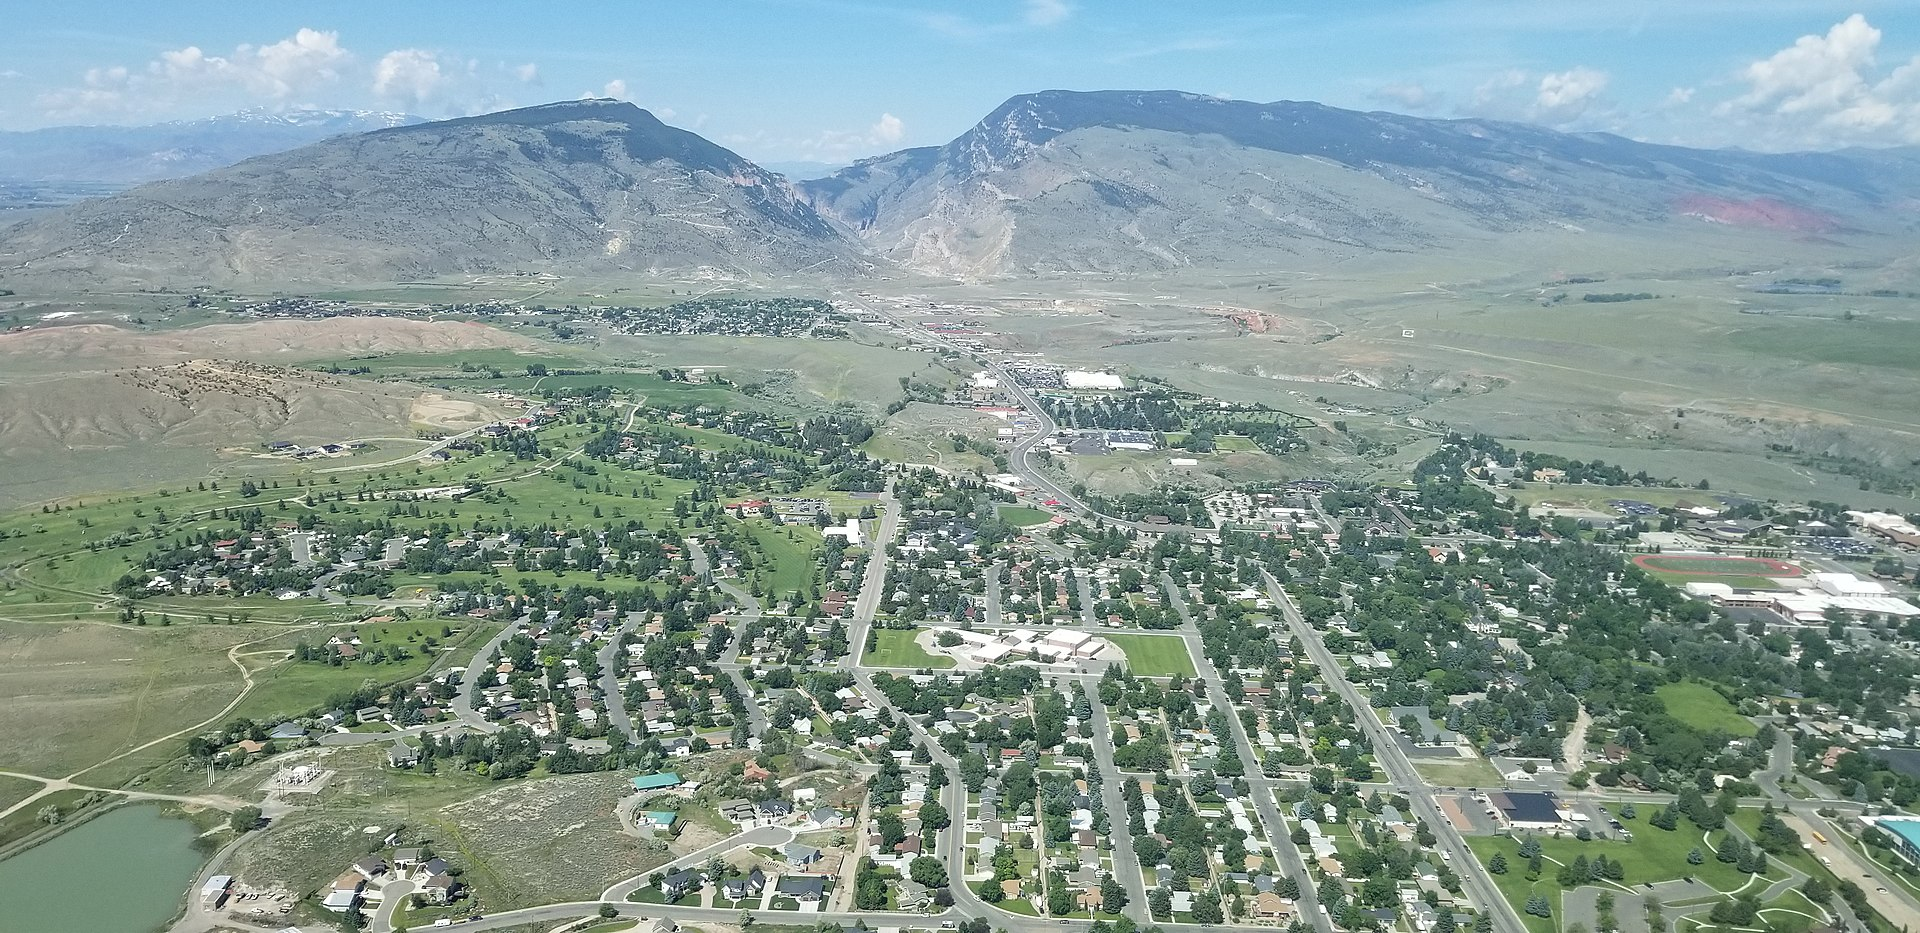 Aerial view of Cody Wyoming